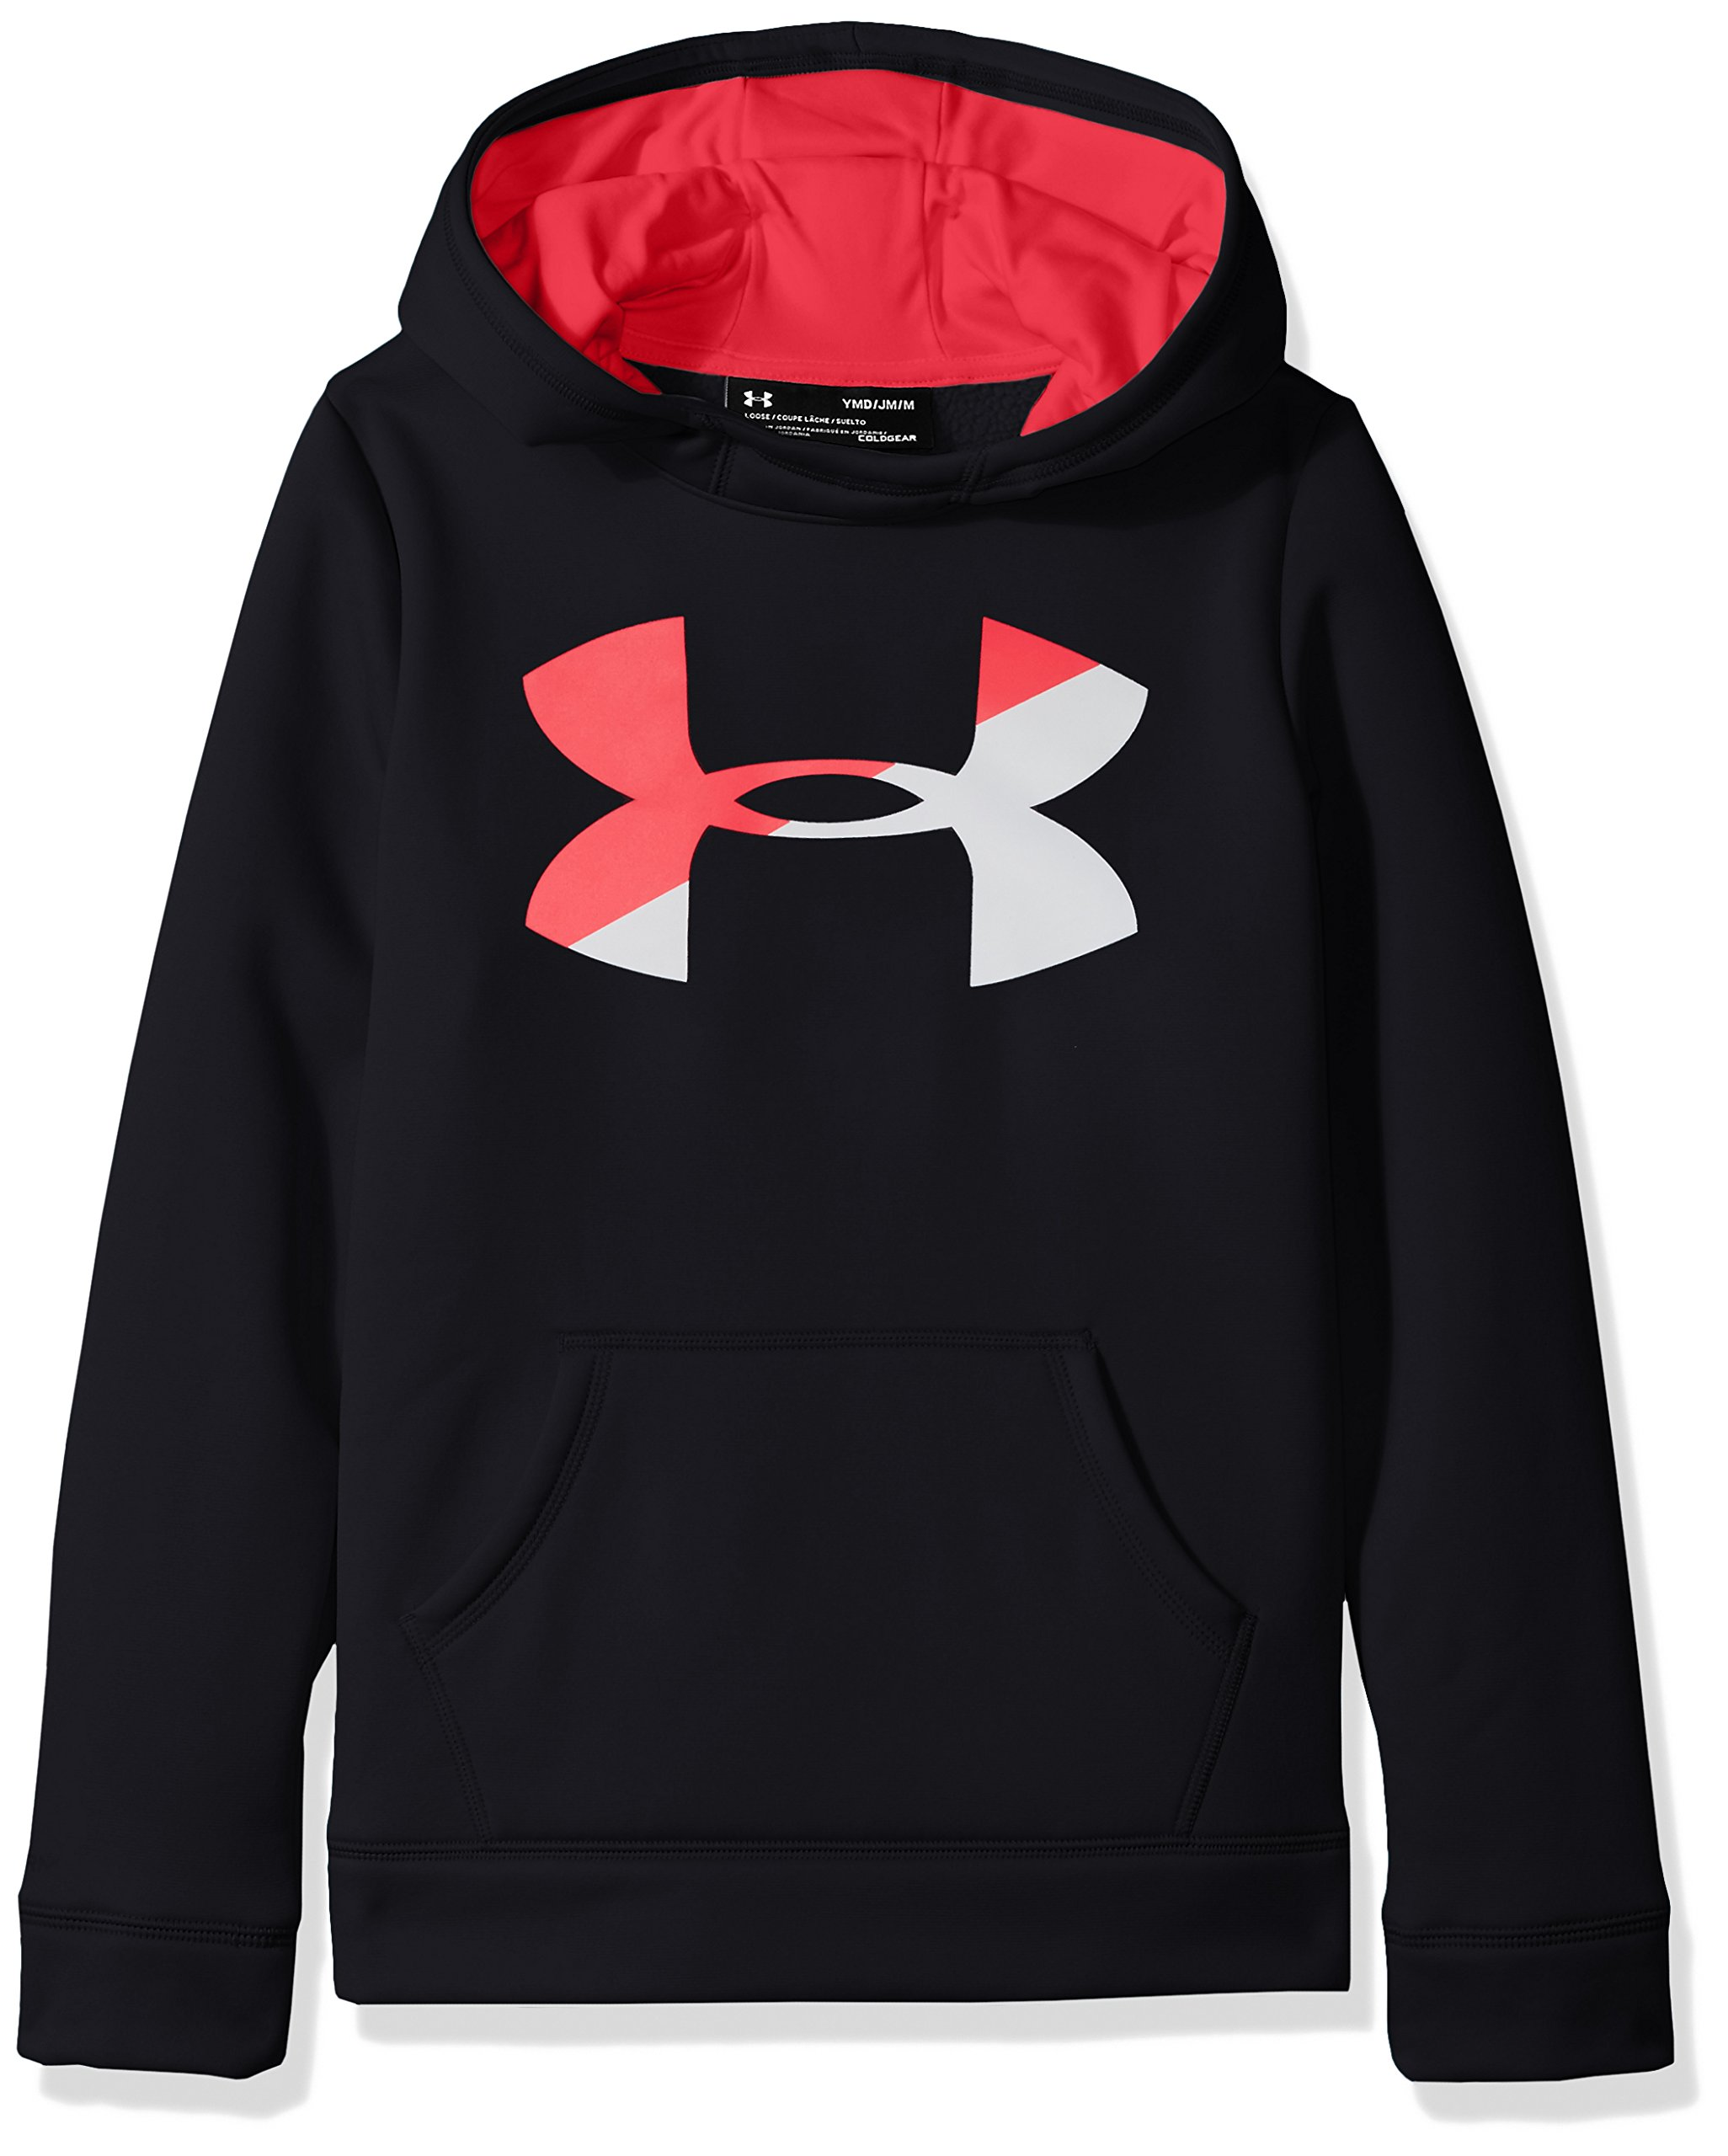 Under Armour Girls' Armour Fleece Big Logo Hoodie,Black (001)/Penta Pink, Youth X-Small